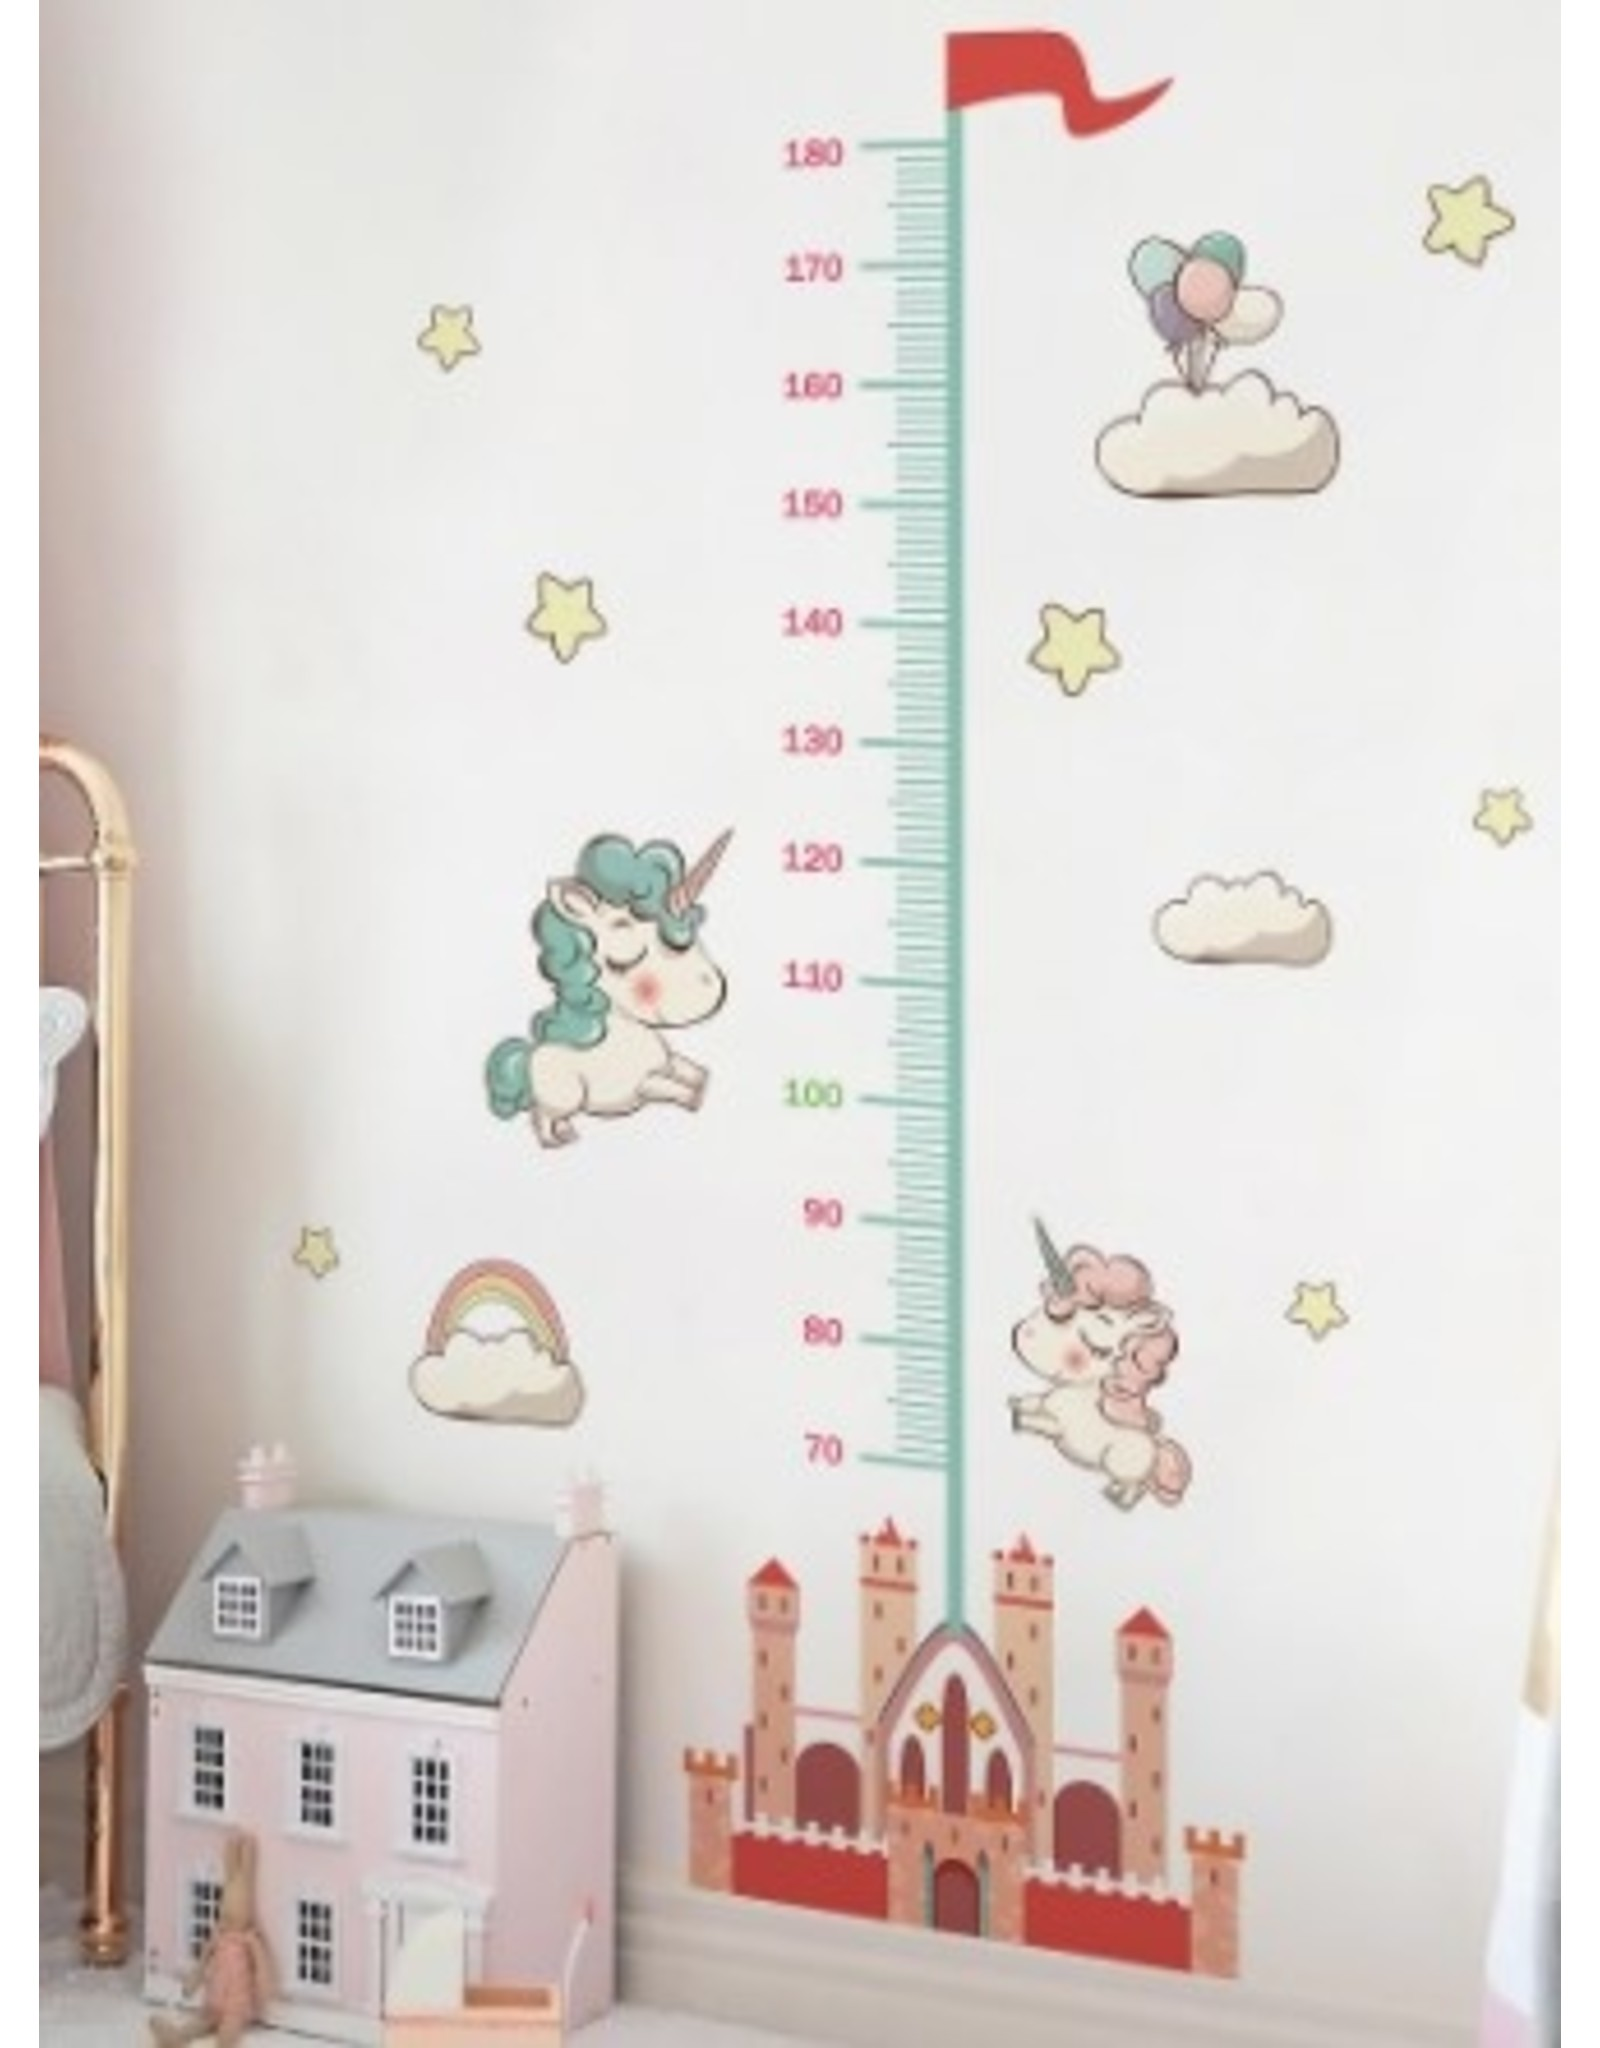 Stick-on Height Ruler with Unicorn and Castle